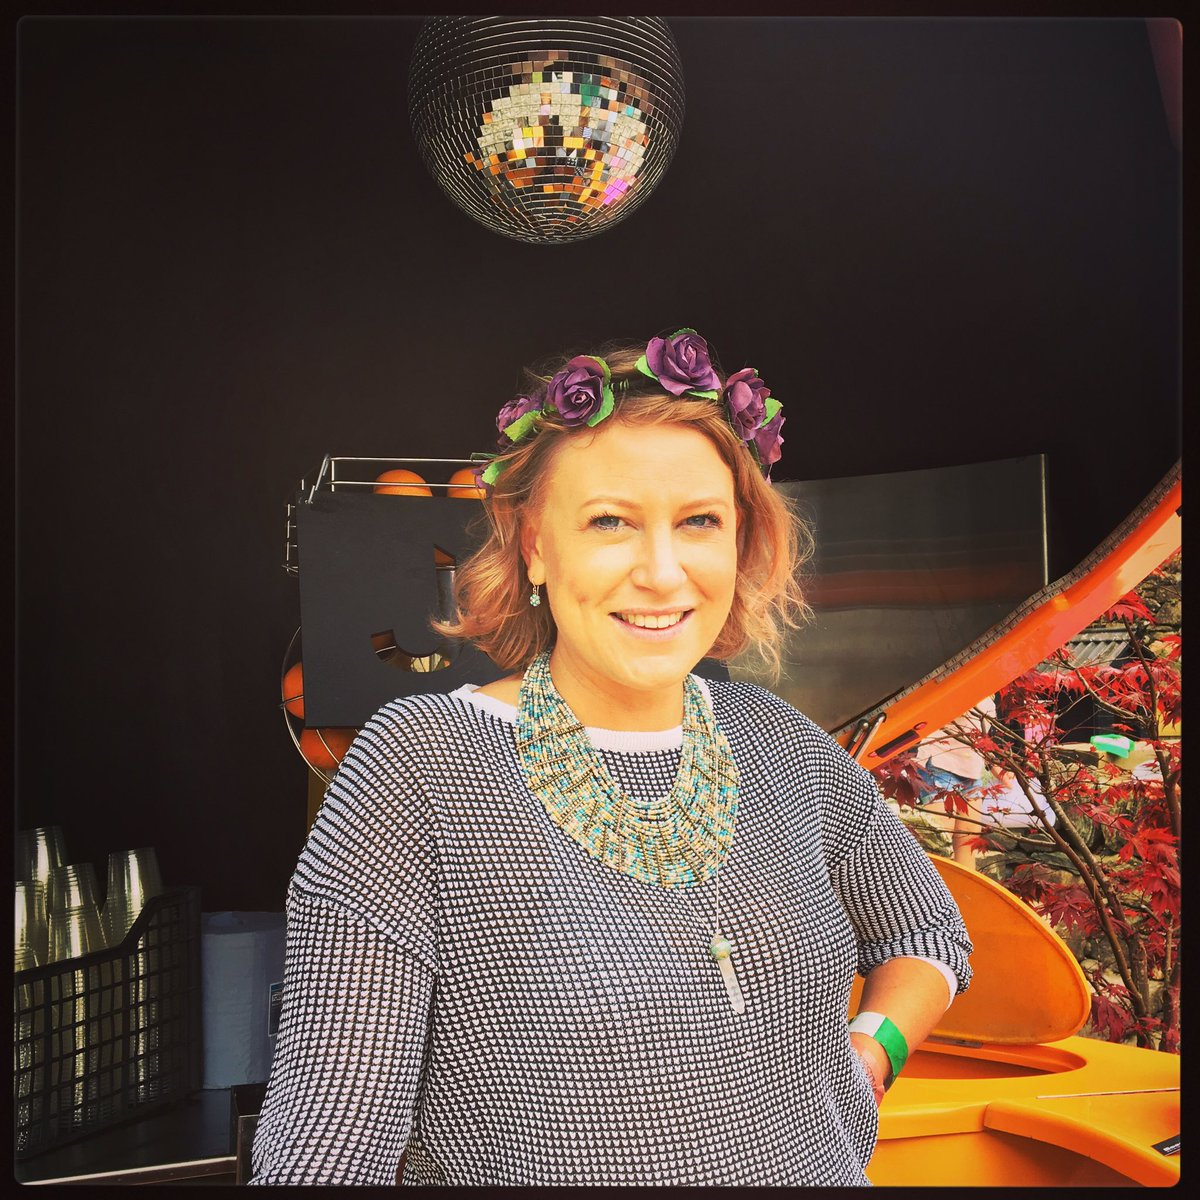 This wonderful lady is spending #MhorFest17 inside a giant orange keeping everyone topped up with #gin &amp; #juice  join us #Festival #Scotland<br>http://pic.twitter.com/MkXnkFlJxC